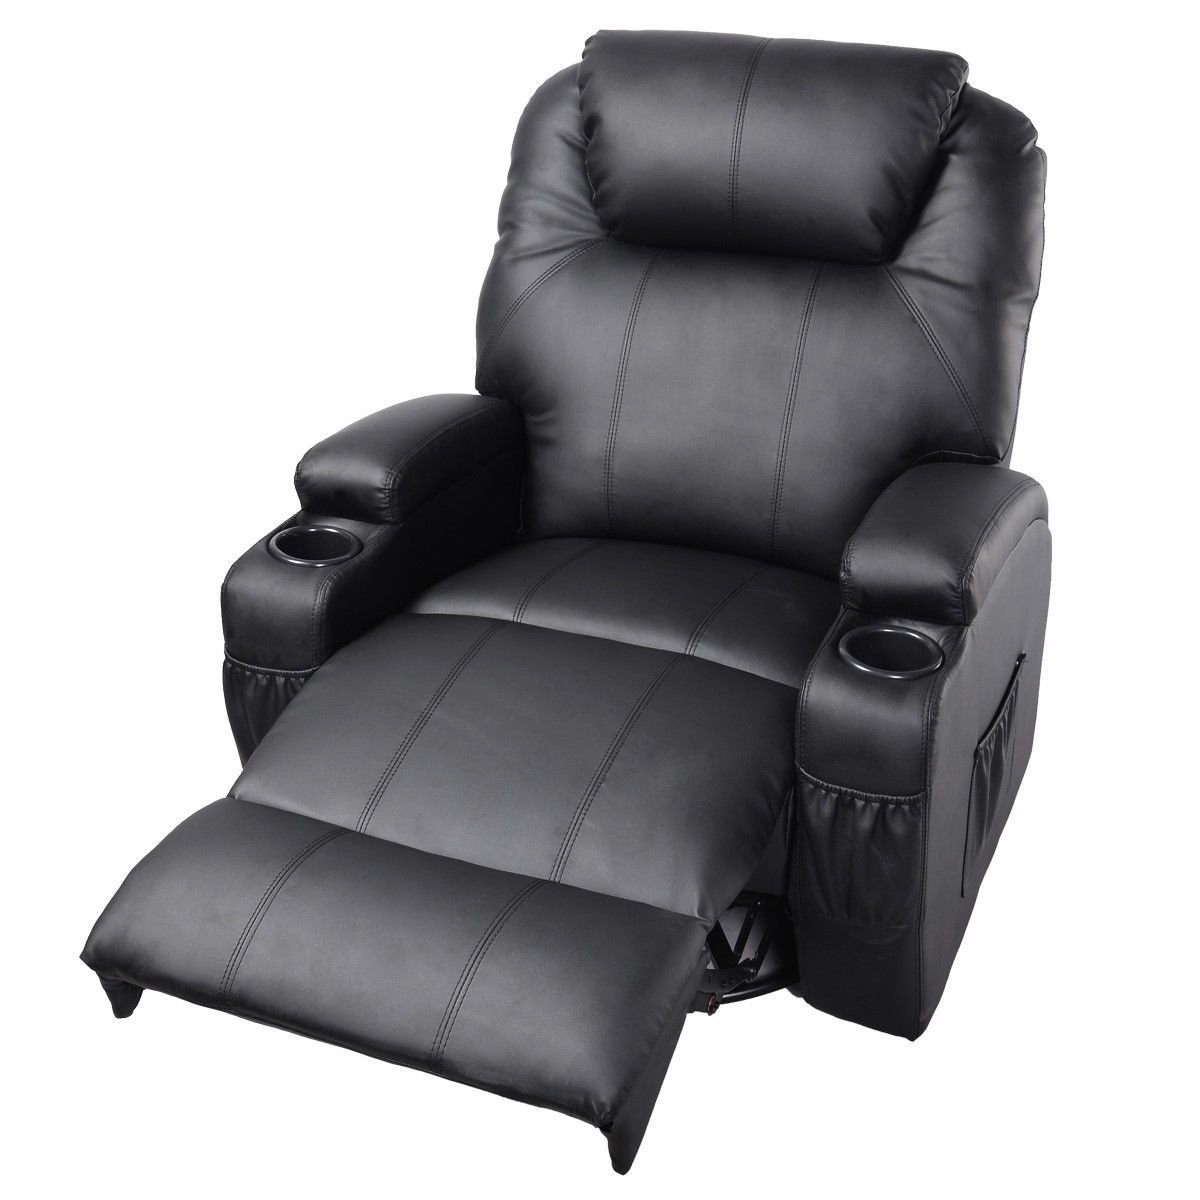 Amazon.com GHP Black Sturdy Ergonomic Seating Massage Recliner Sofa Chair Lounge Heated w Control Kitchen u0026 Dining  sc 1 st  Amazon.com : dual control recliner chairs - islam-shia.org